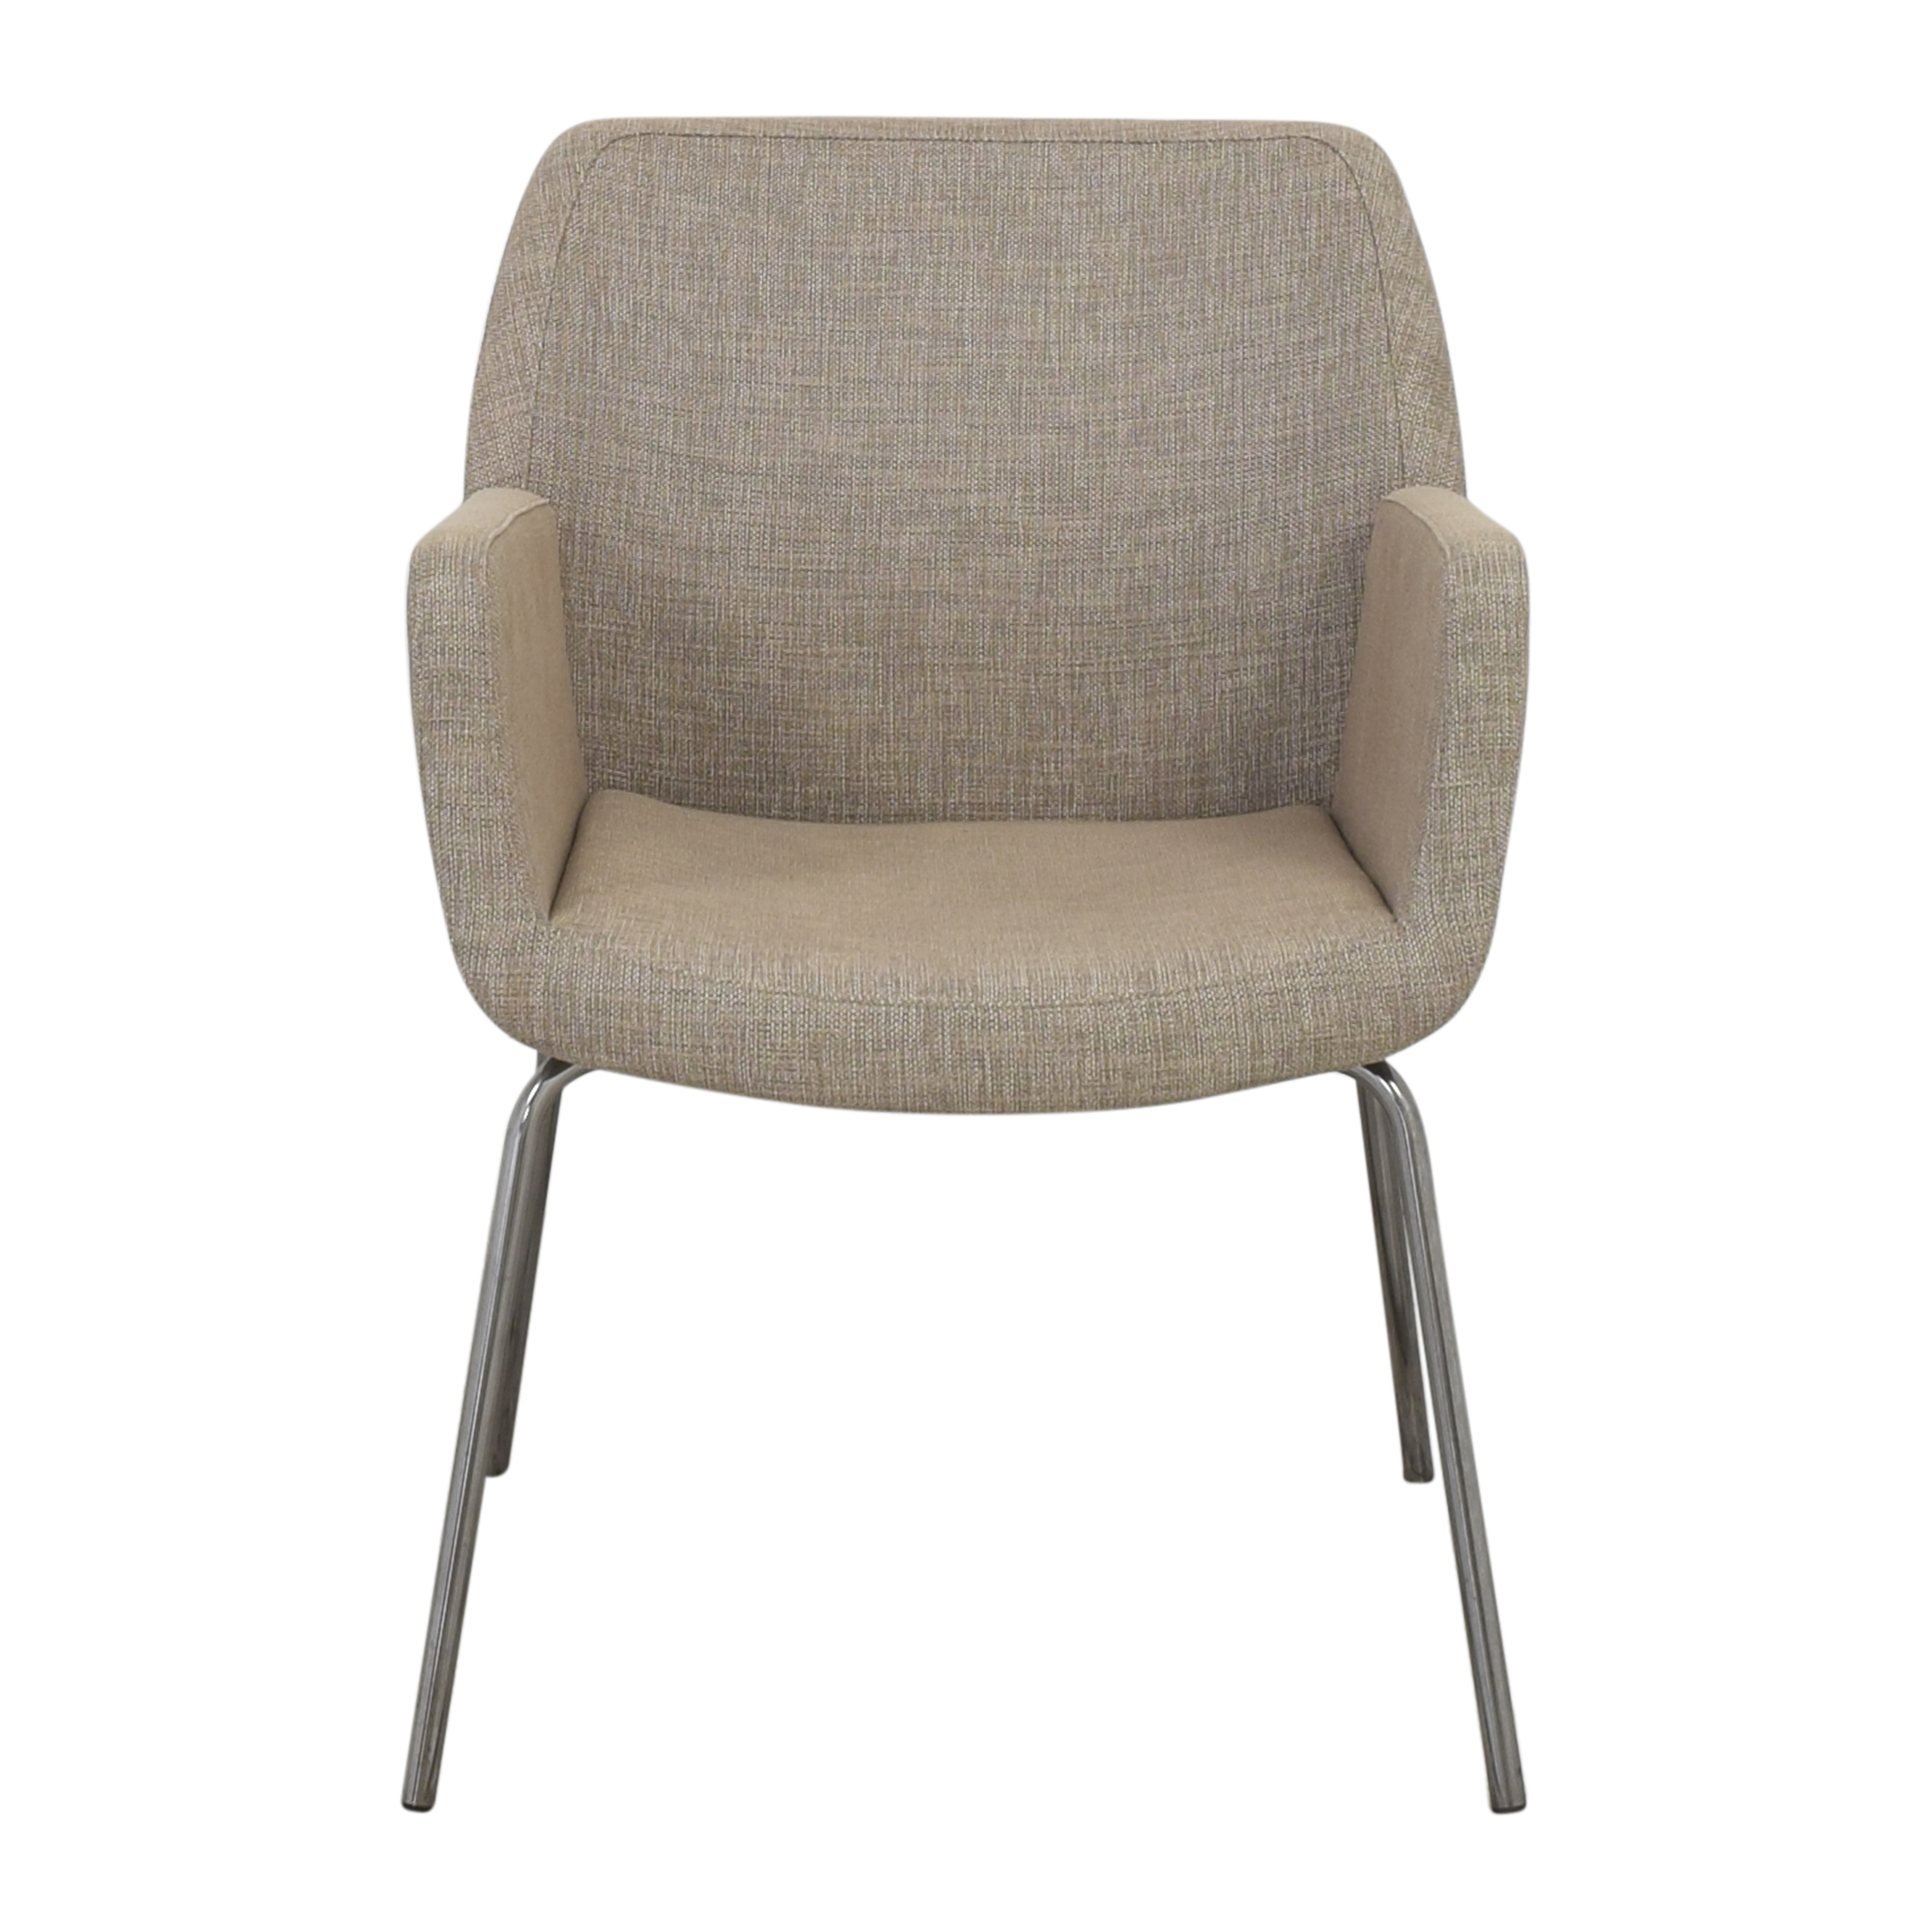 Steelcase Steelcaase Coalesse Bindu Side Chair nyc